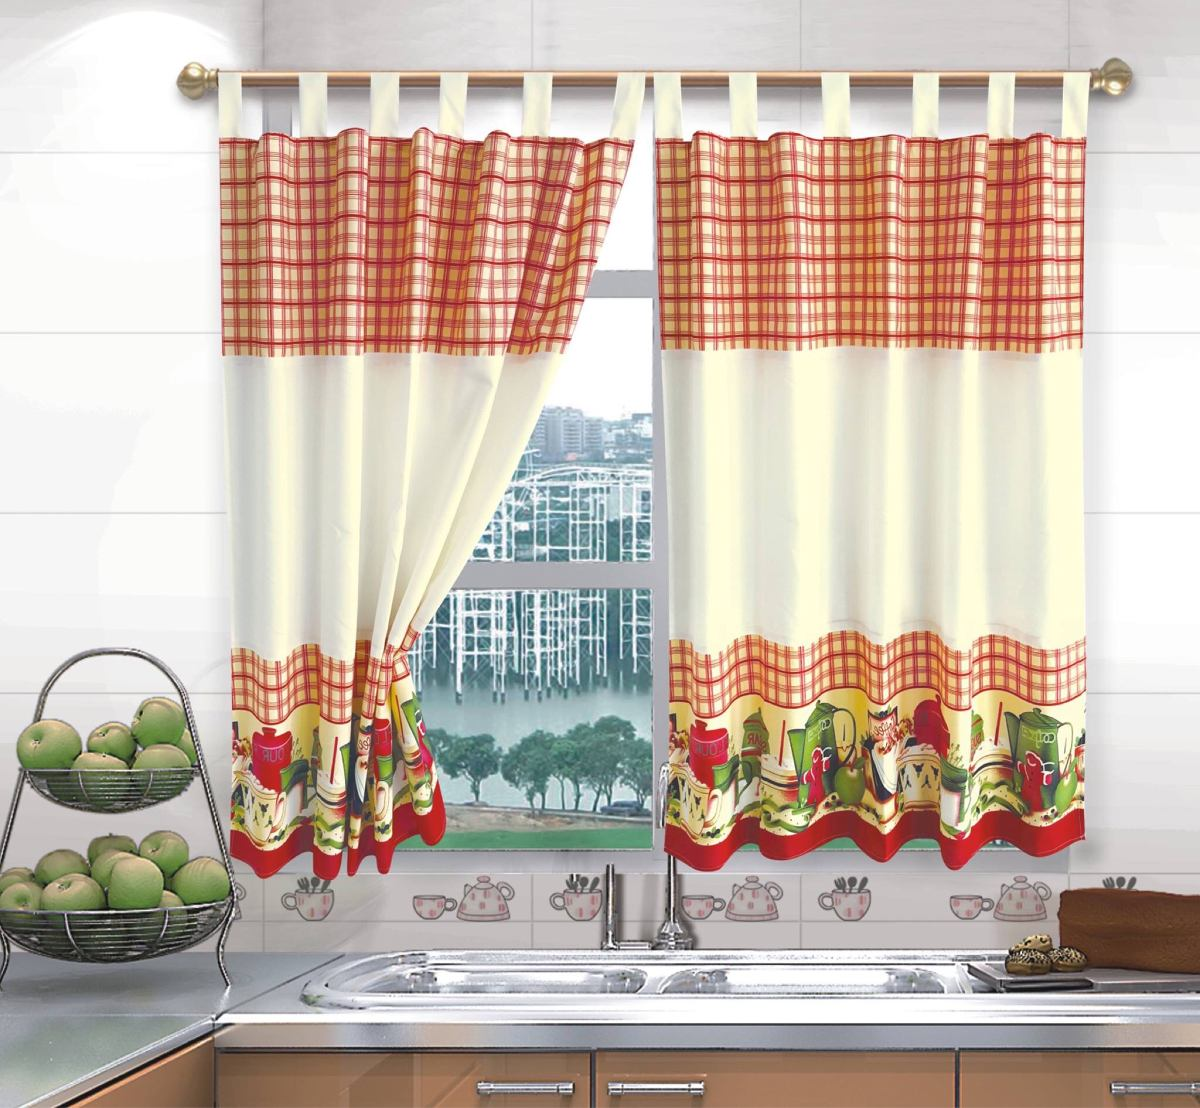 Cortinas de cocina rustica ideas de disenos for Cortinas de cocinas ideas